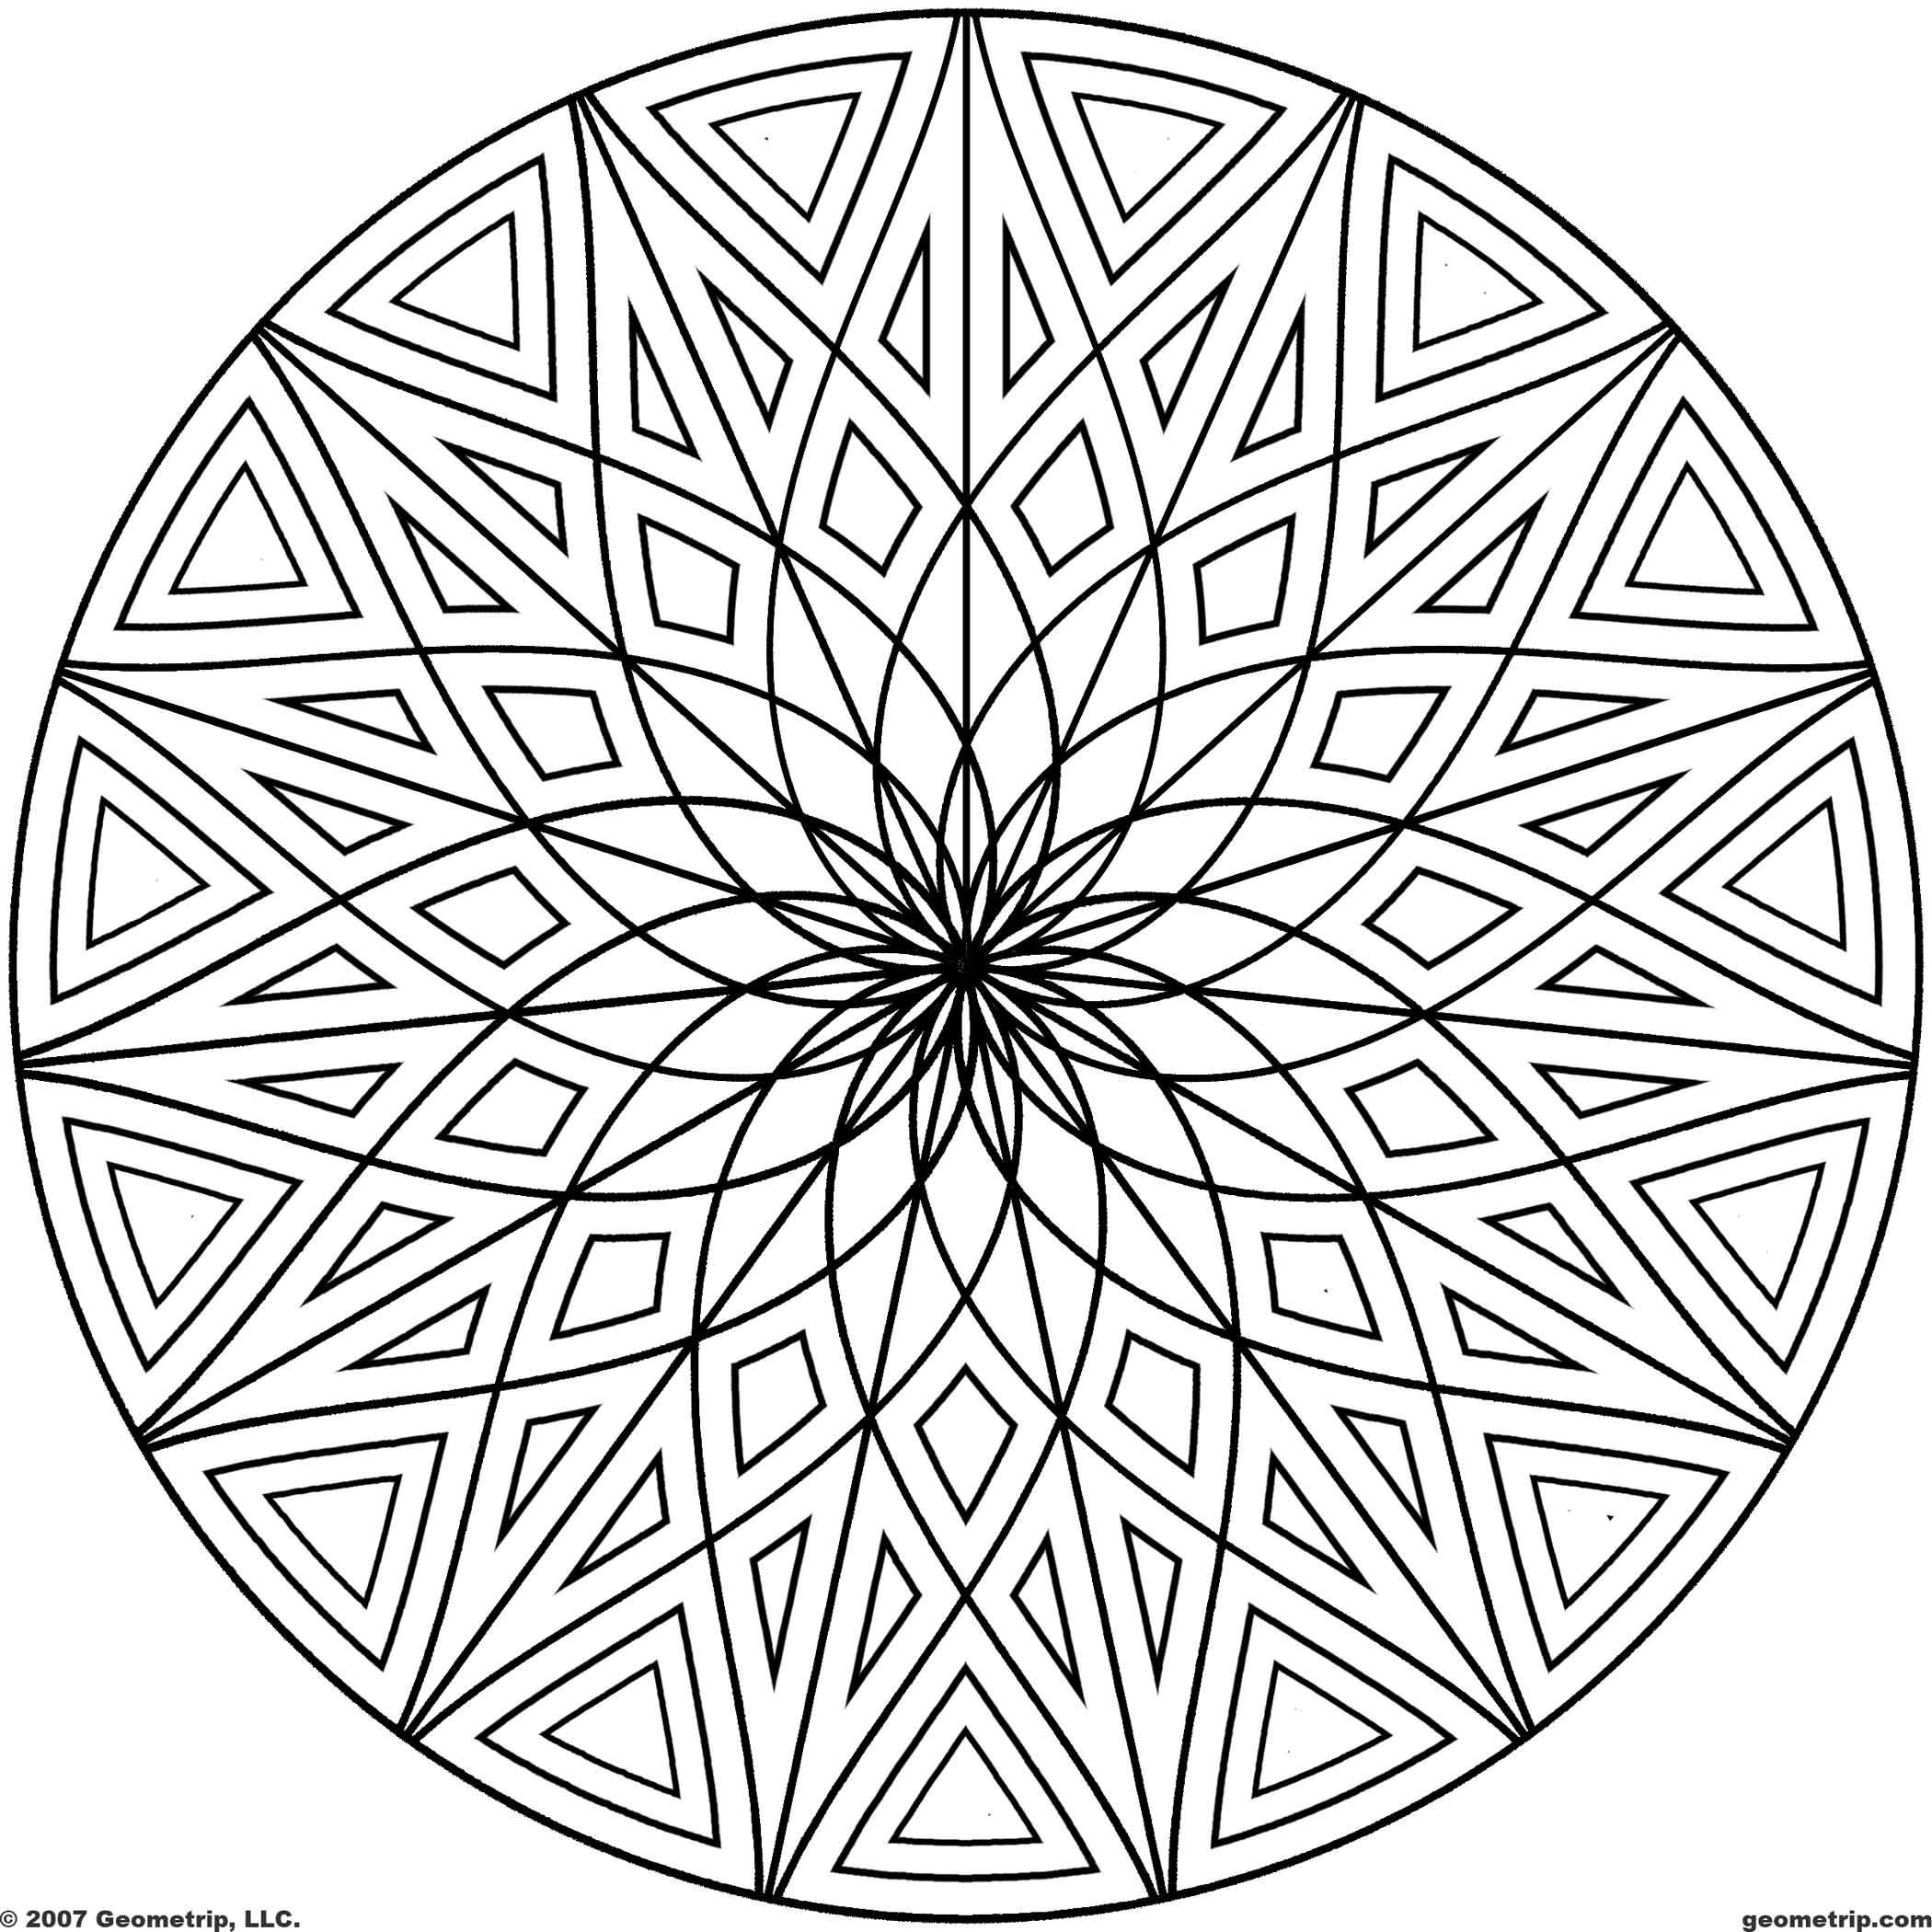 coloring pages of cool designs download pdf jpg - Cool Colouring Pages